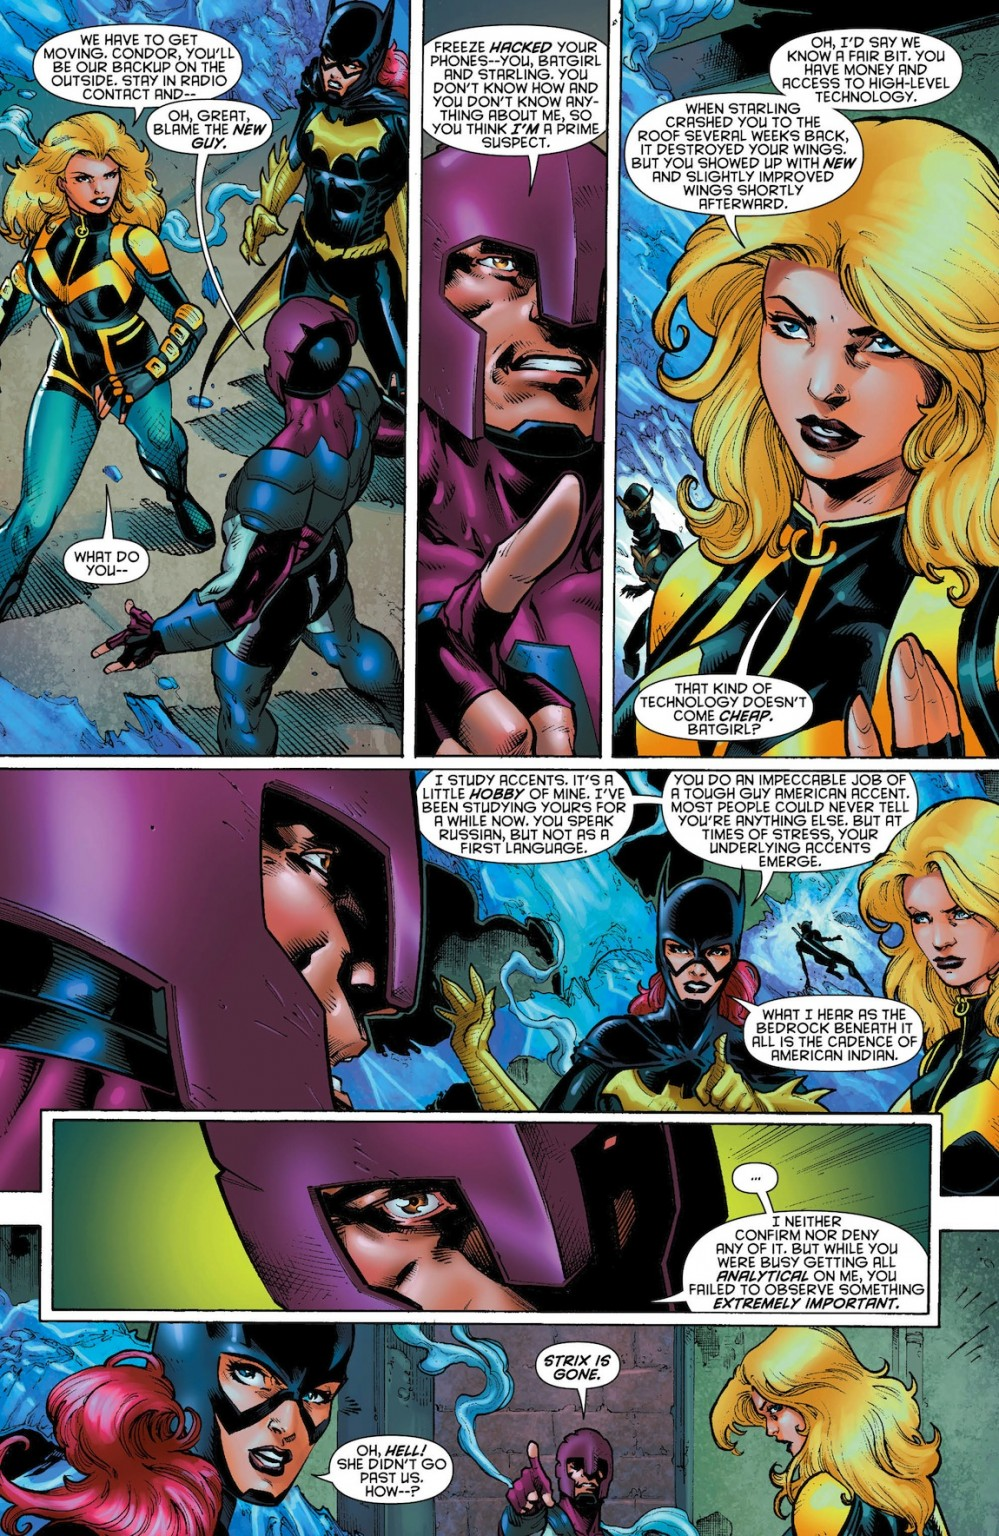 Birds of Prey #19